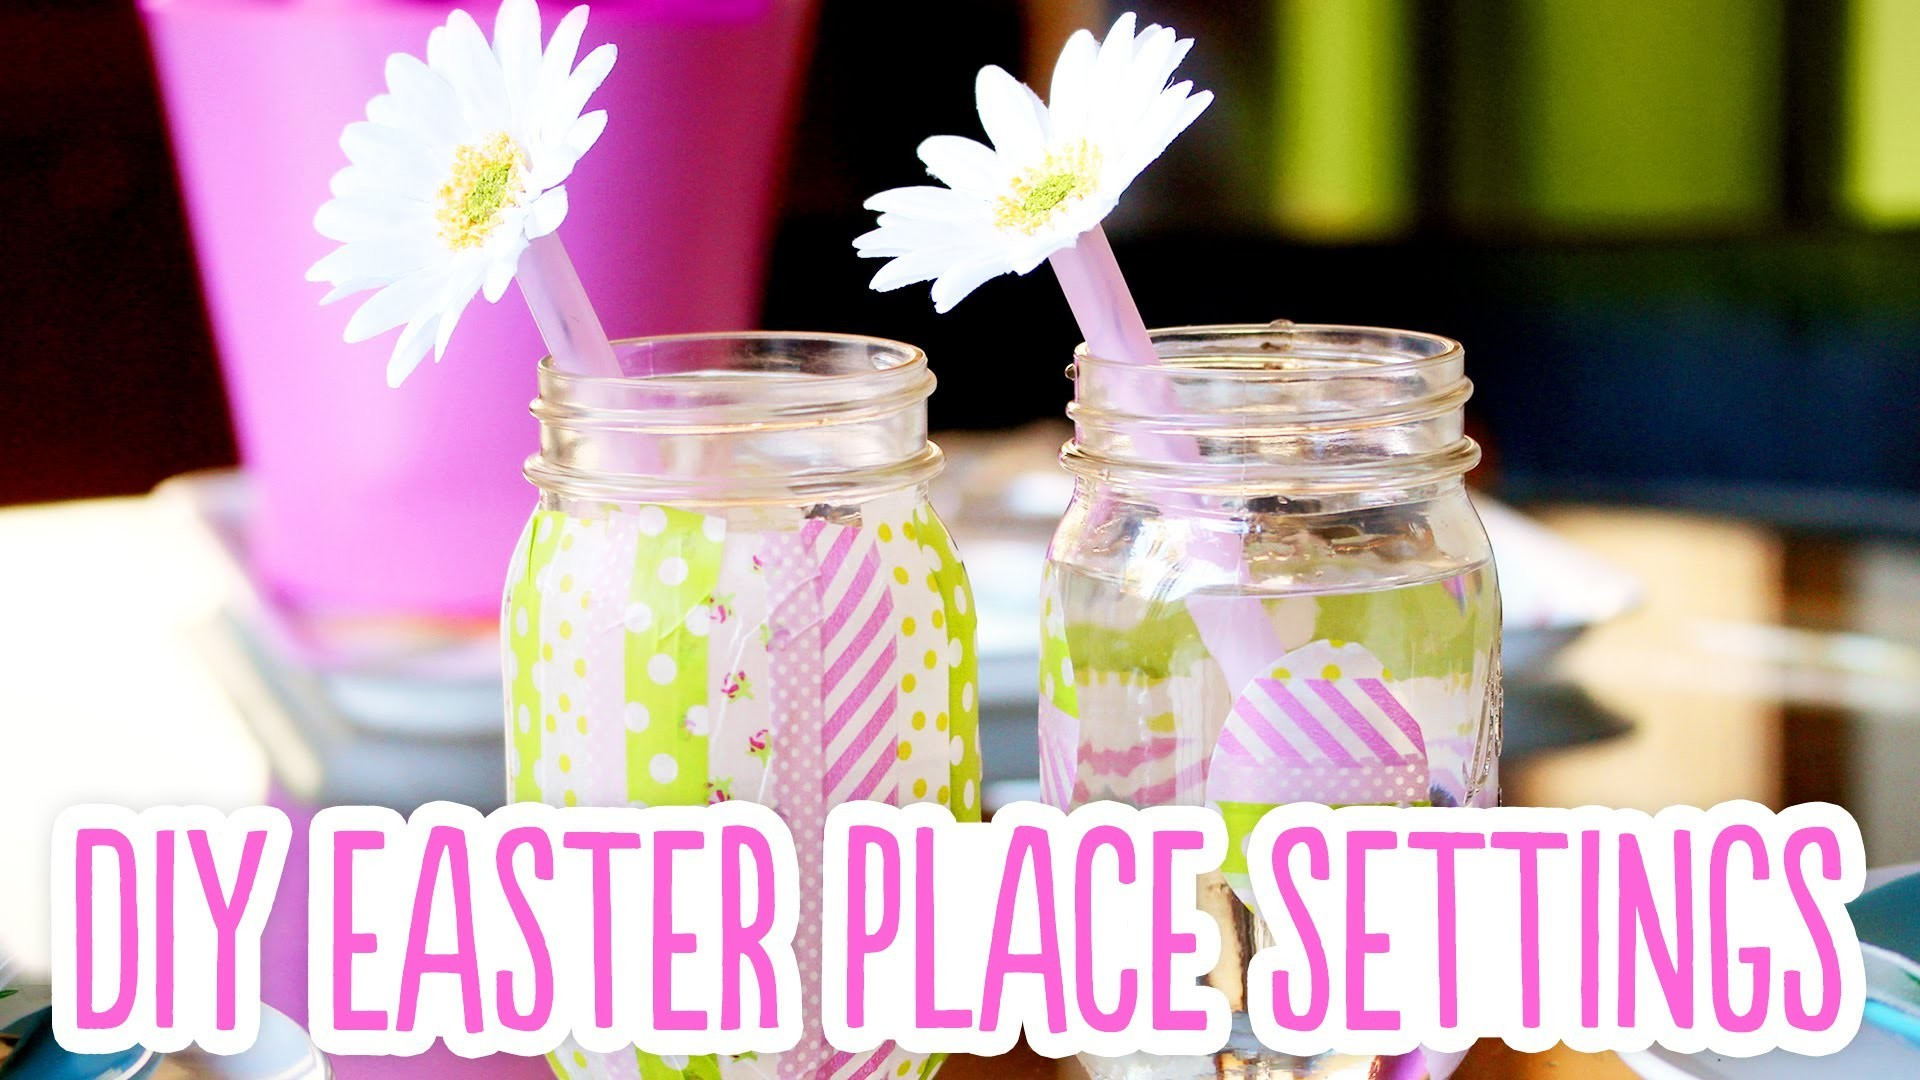 DIY Easter Place Settings